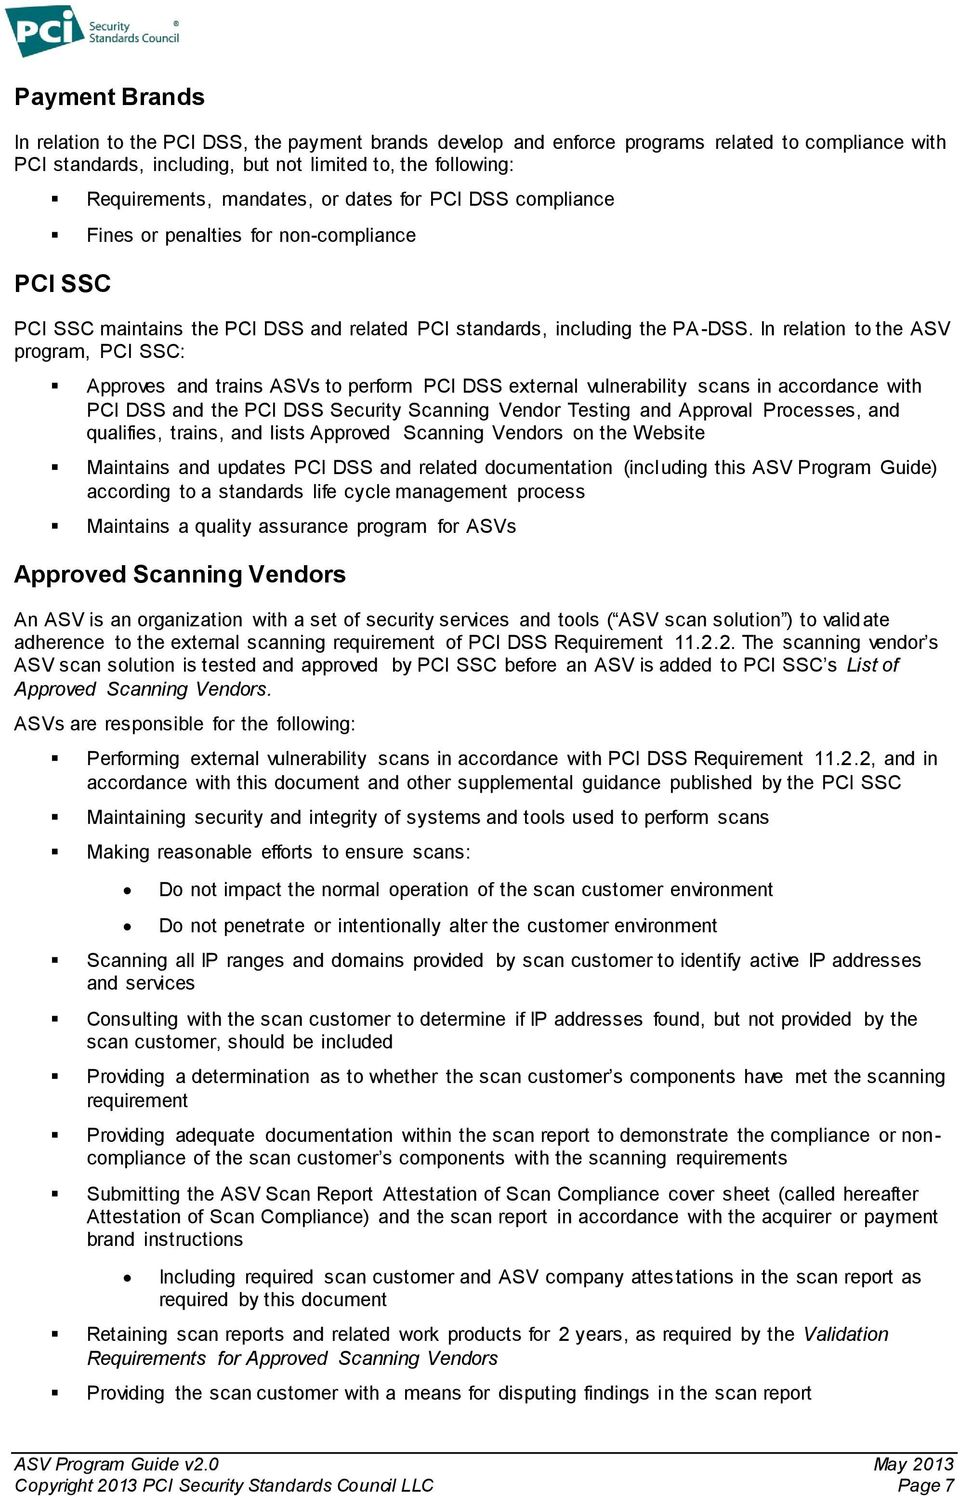 In relation to the ASV program, PCI SSC: Approves and trains ASVs to perform PCI DSS external vulnerability scans in accordance with PCI DSS and the PCI DSS Security Scanning Vendor Testing and